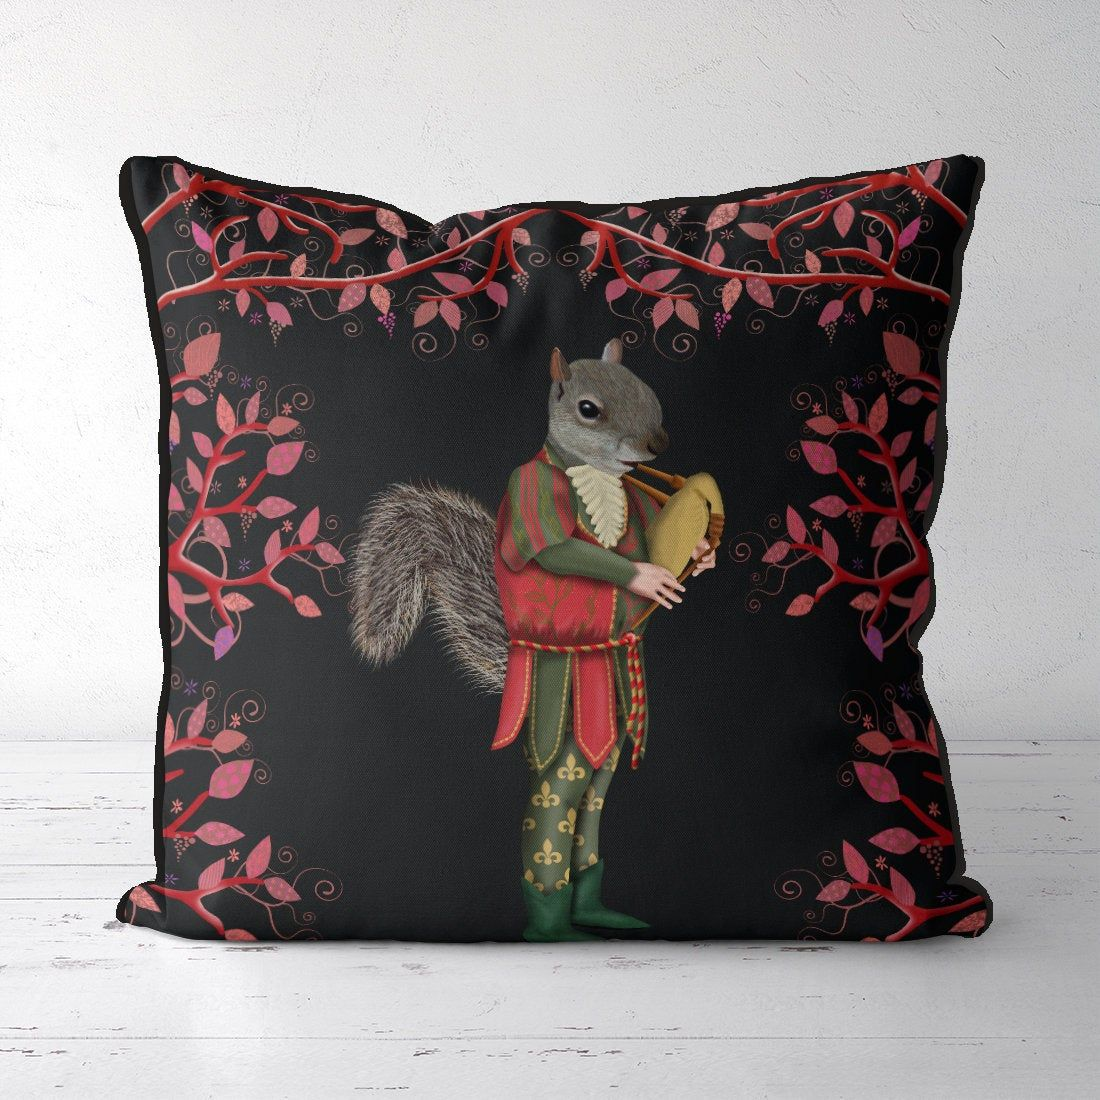 Squirrel gift Woodland pillow black pillow nursery decor Woodland print country home Squirrel minstrel Animal print cushion bedroom throw